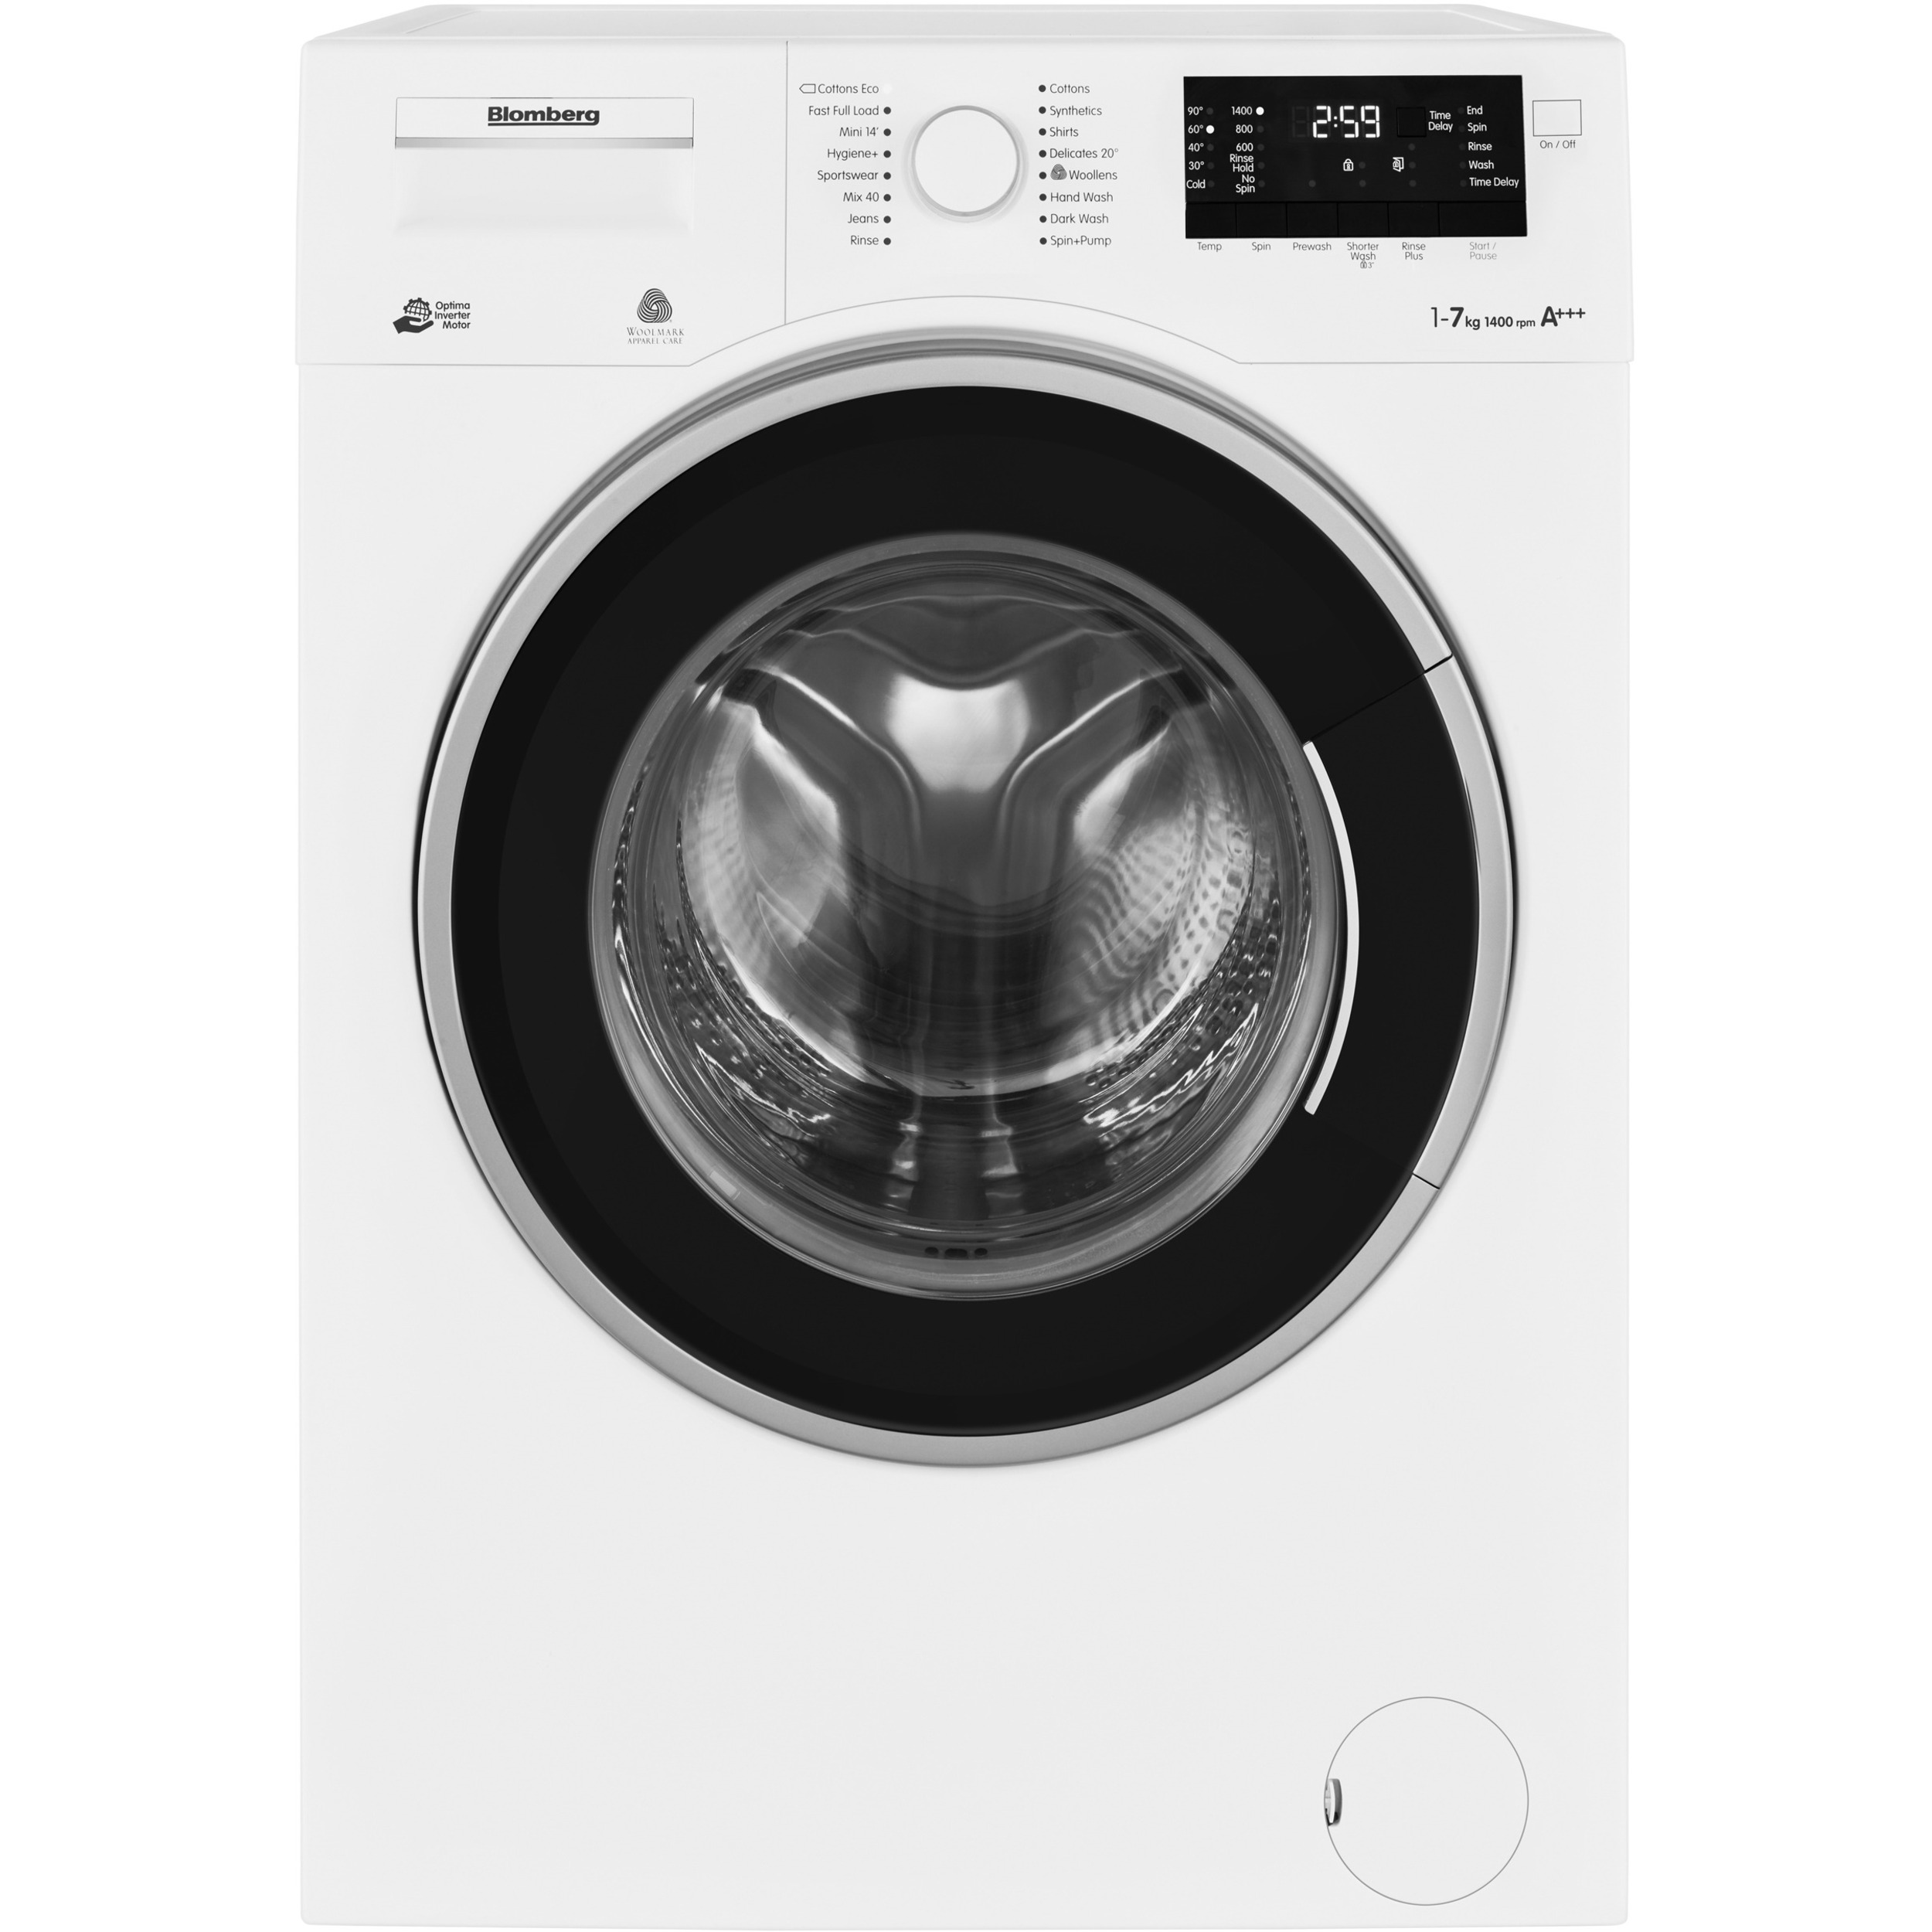 Mini Washing Machines Blomberg 7 Kg Washing Machine With Time Delay